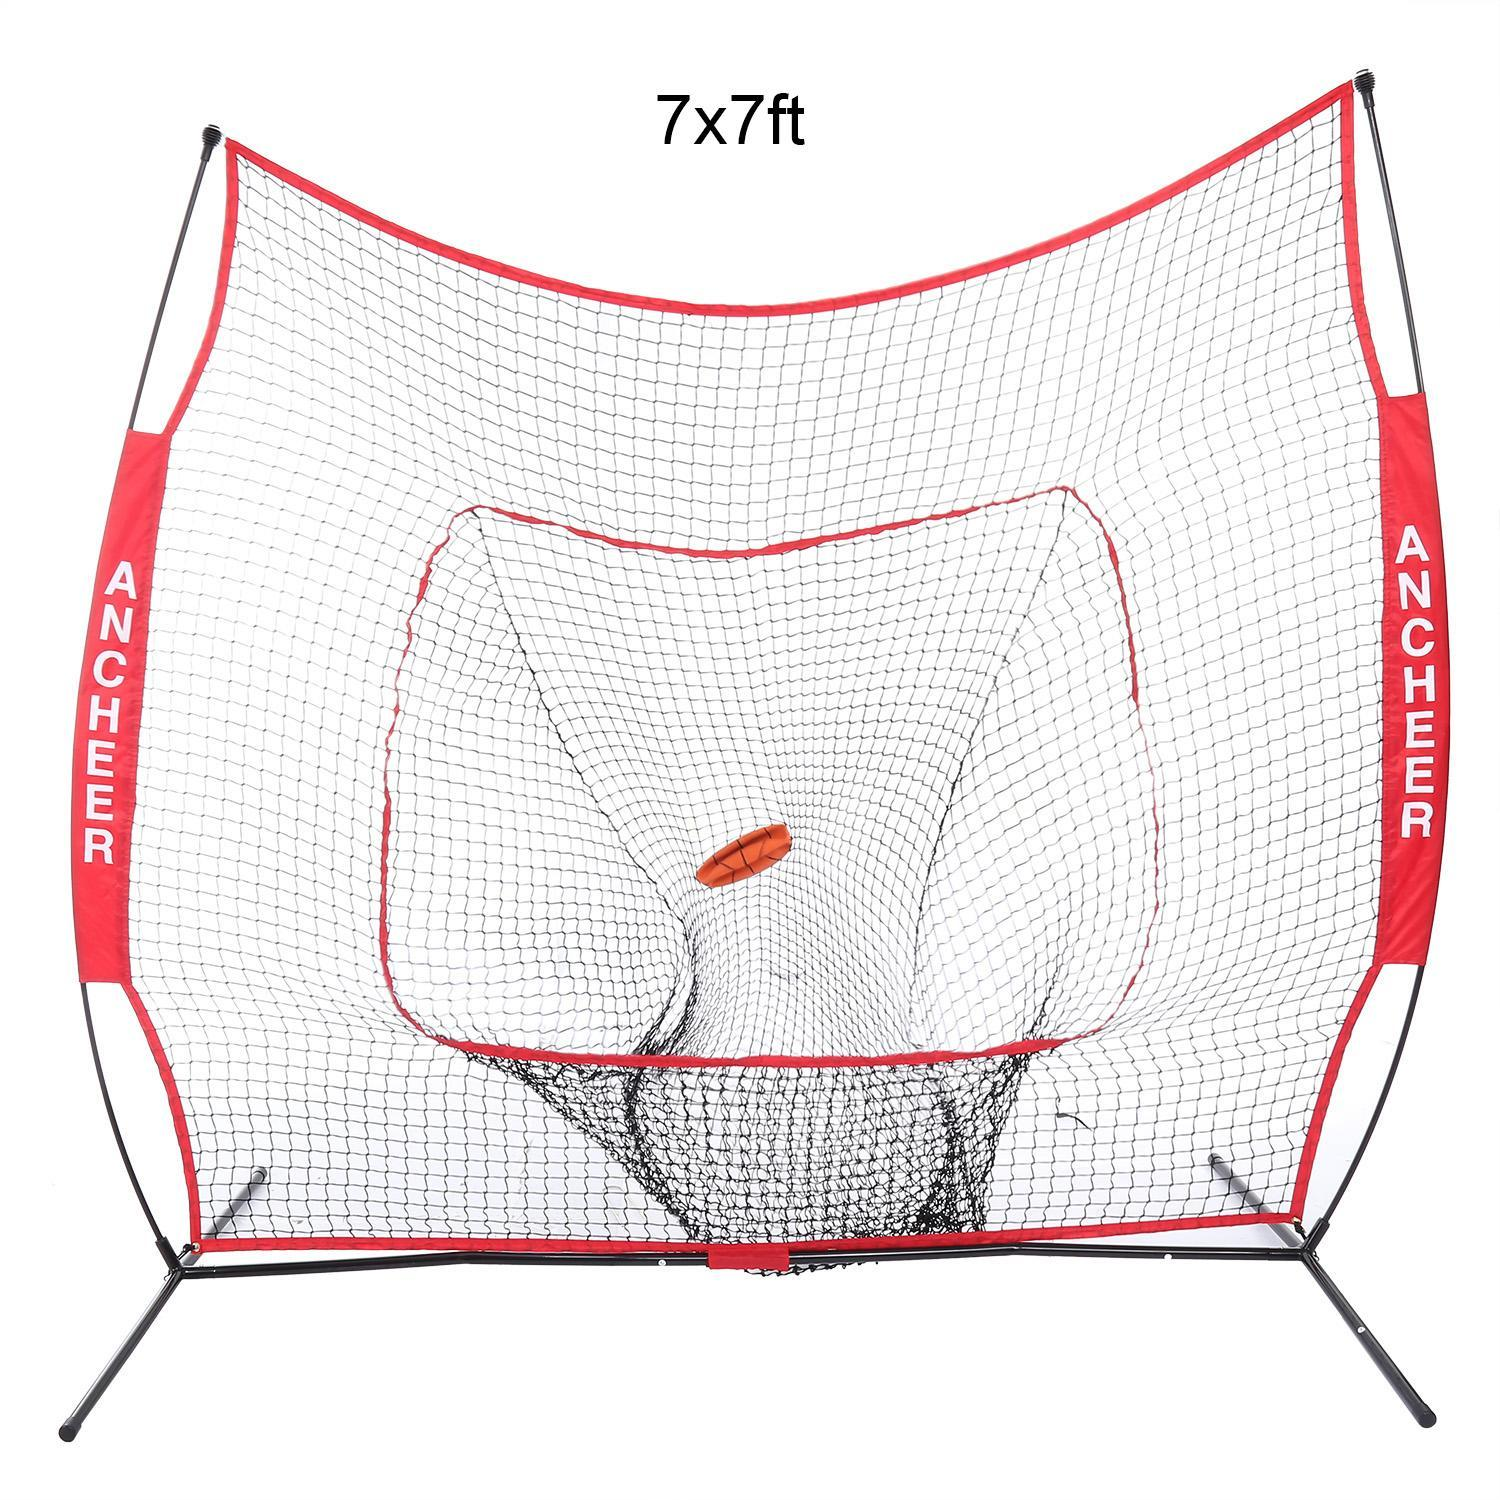 Kimimart Backstop Screen Equipment Training Aids 7 x 7ft ...